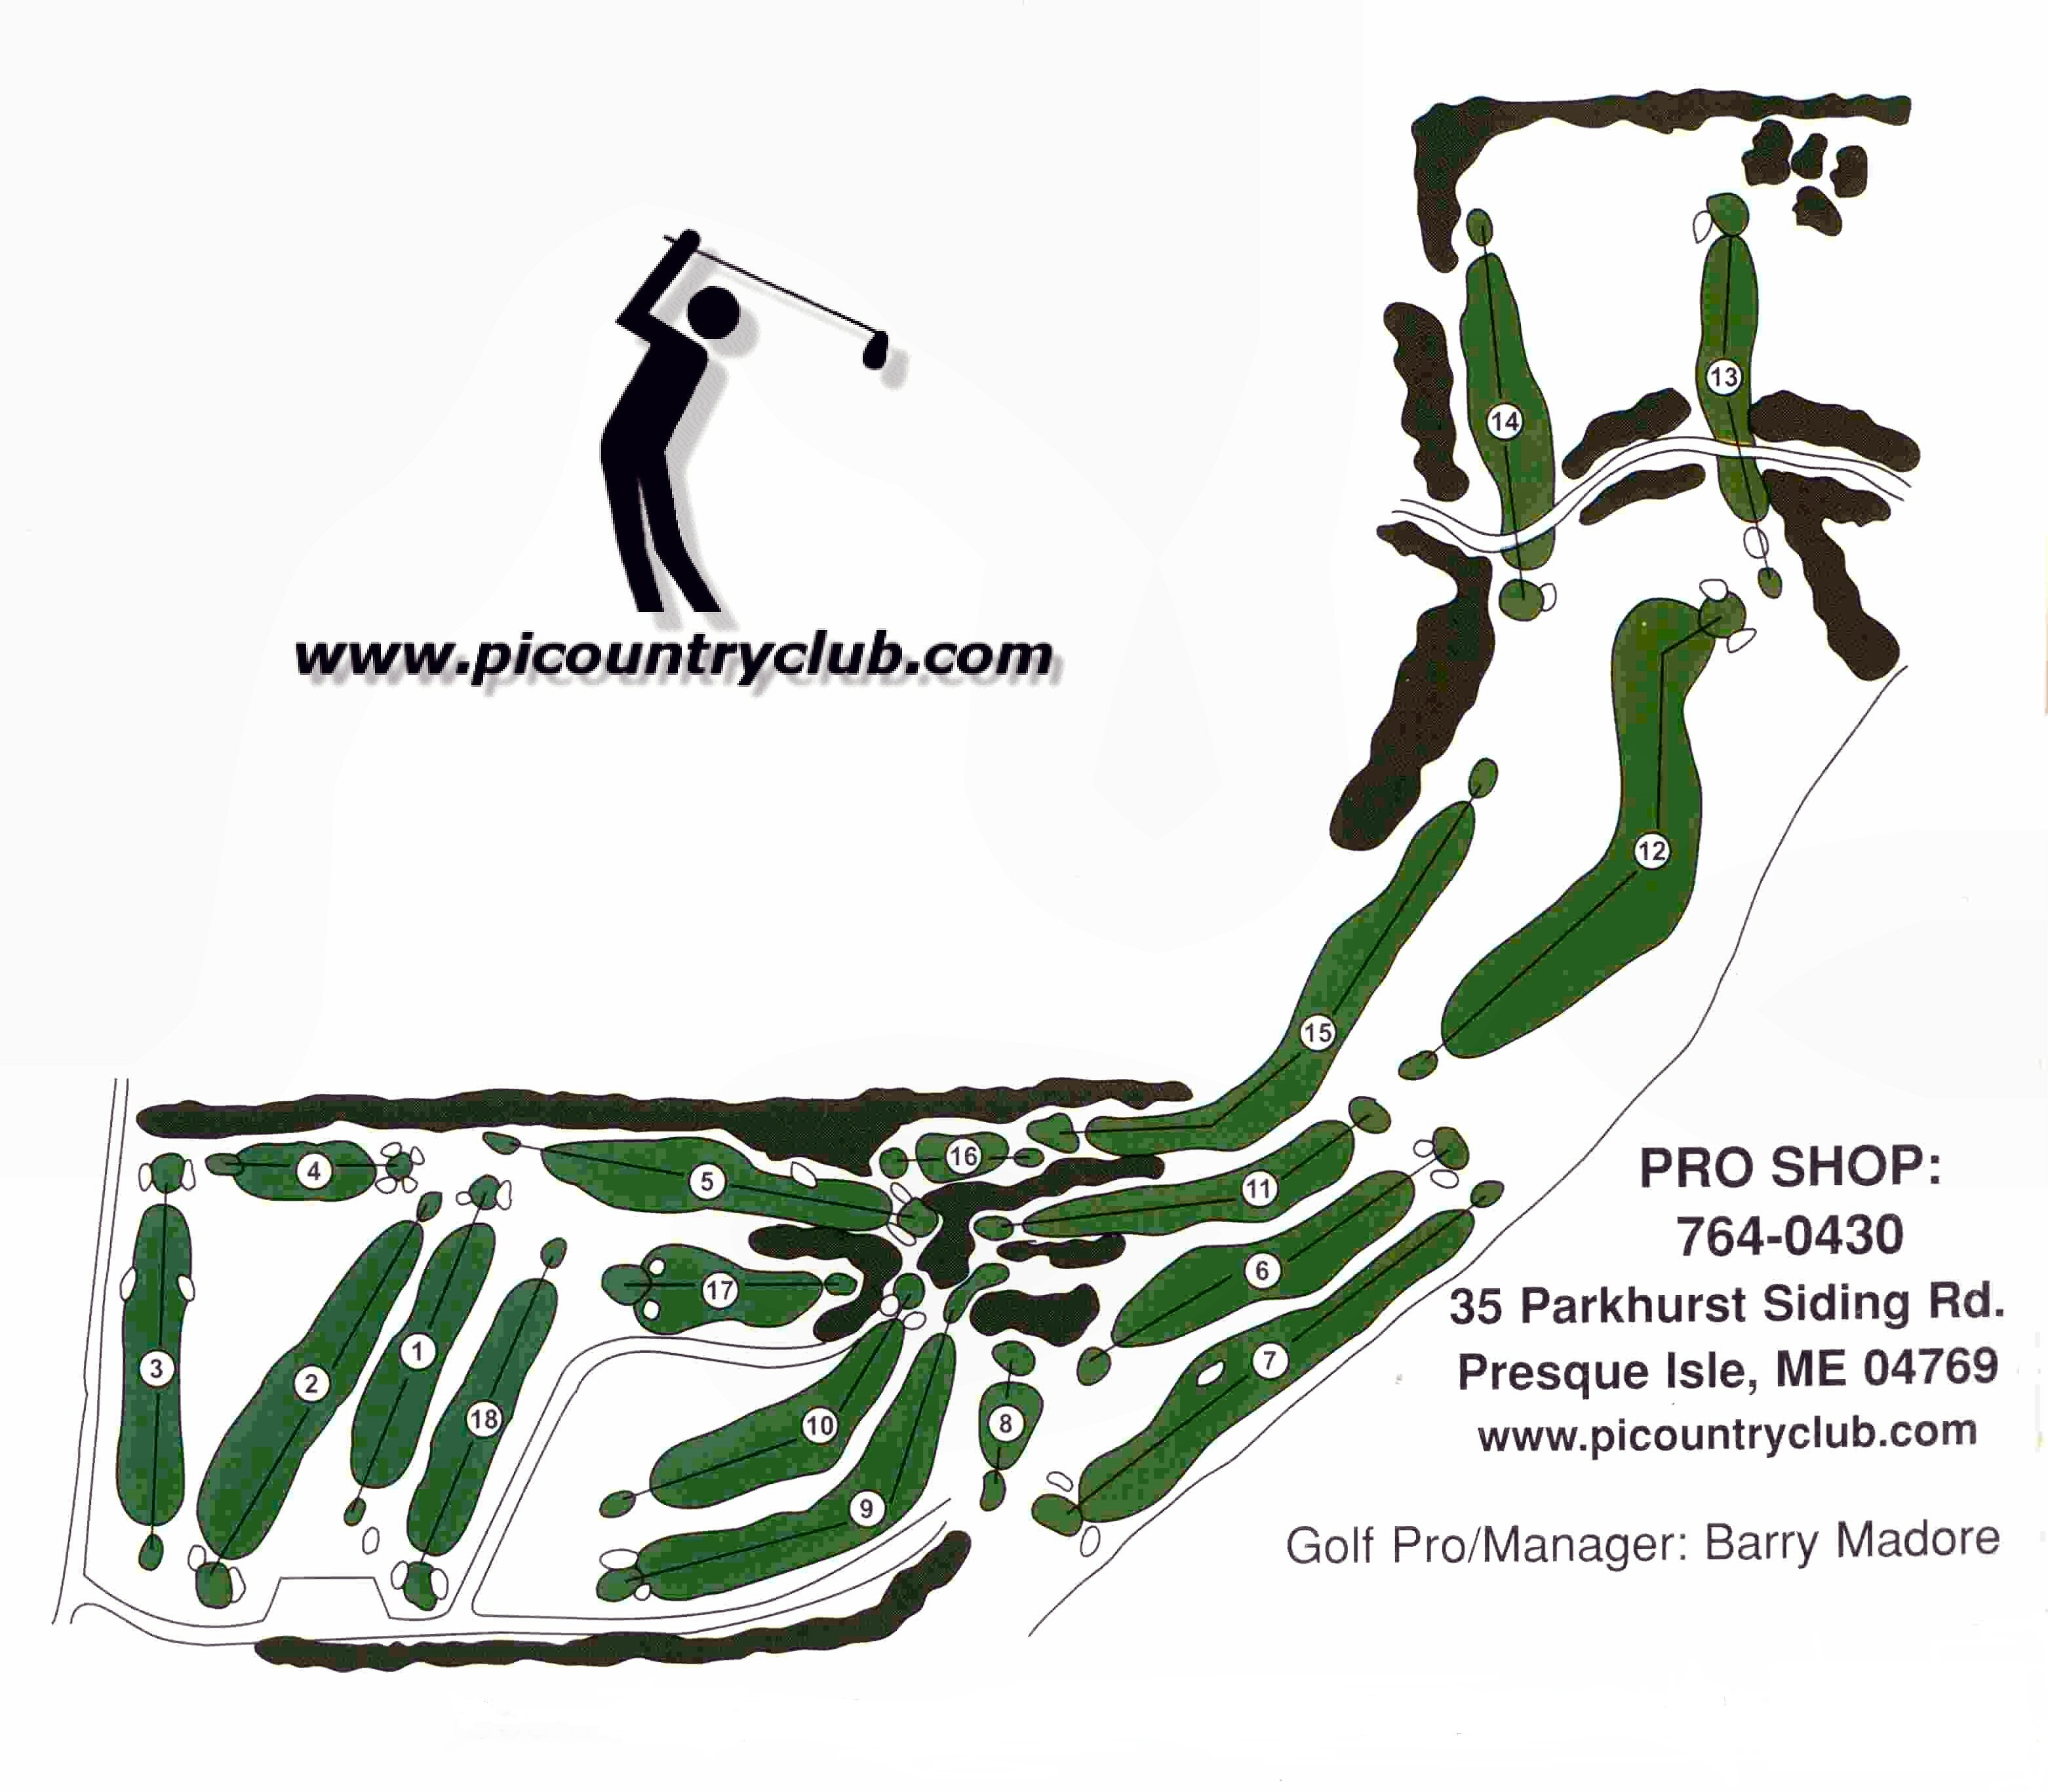 map of PICC golf course